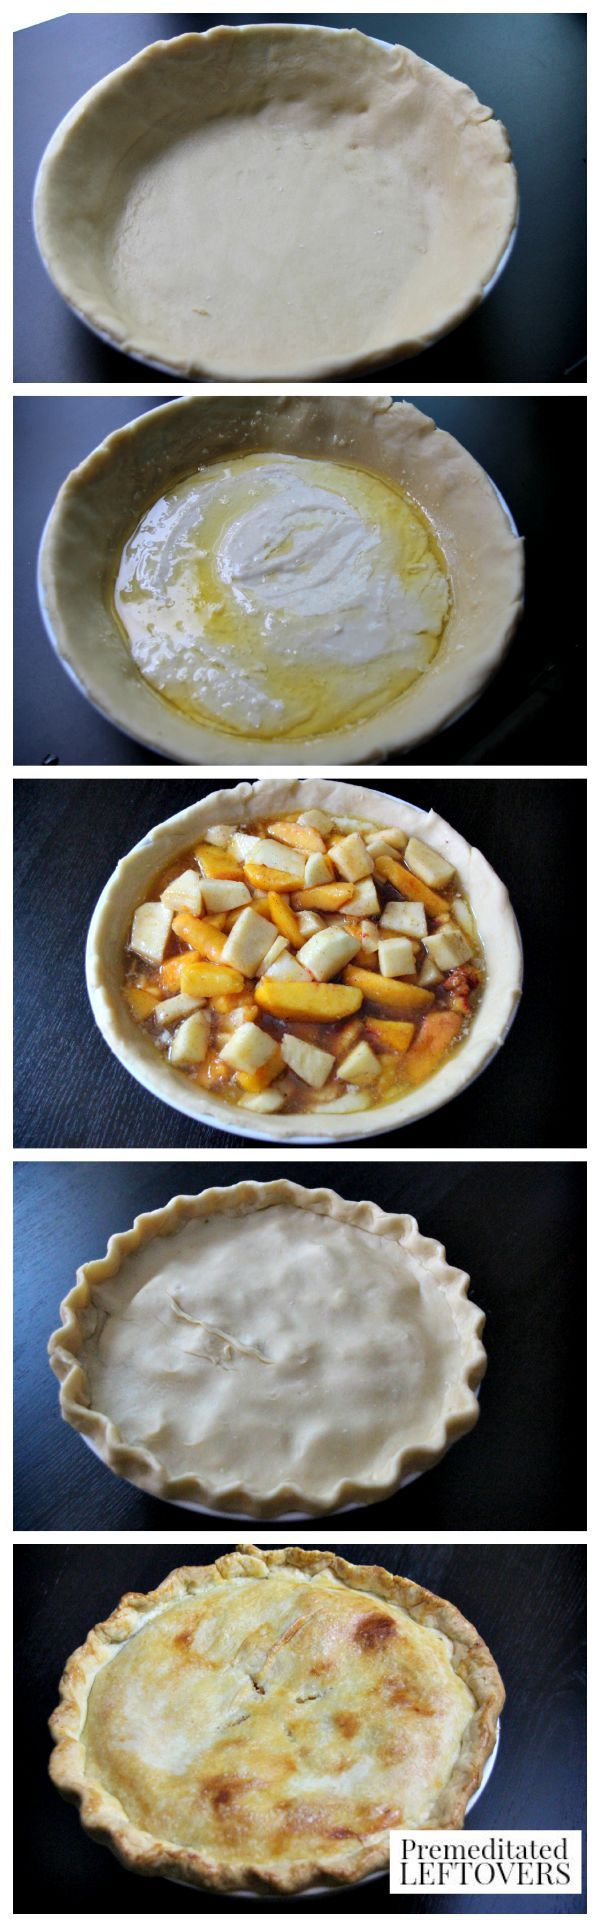 How to Make a Peach and Apple Cobbler Pie - Process